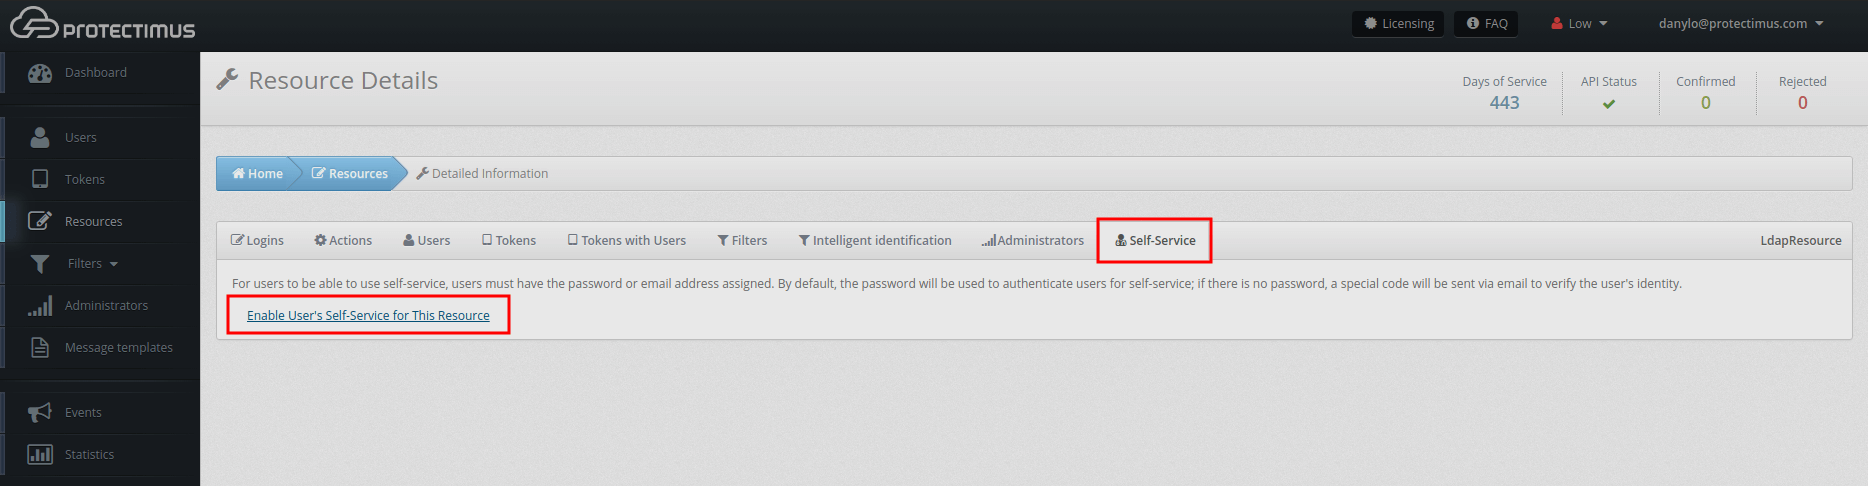 Active Directory Two-factor Authentication setup with Protectimus DSPA - Activate self-service